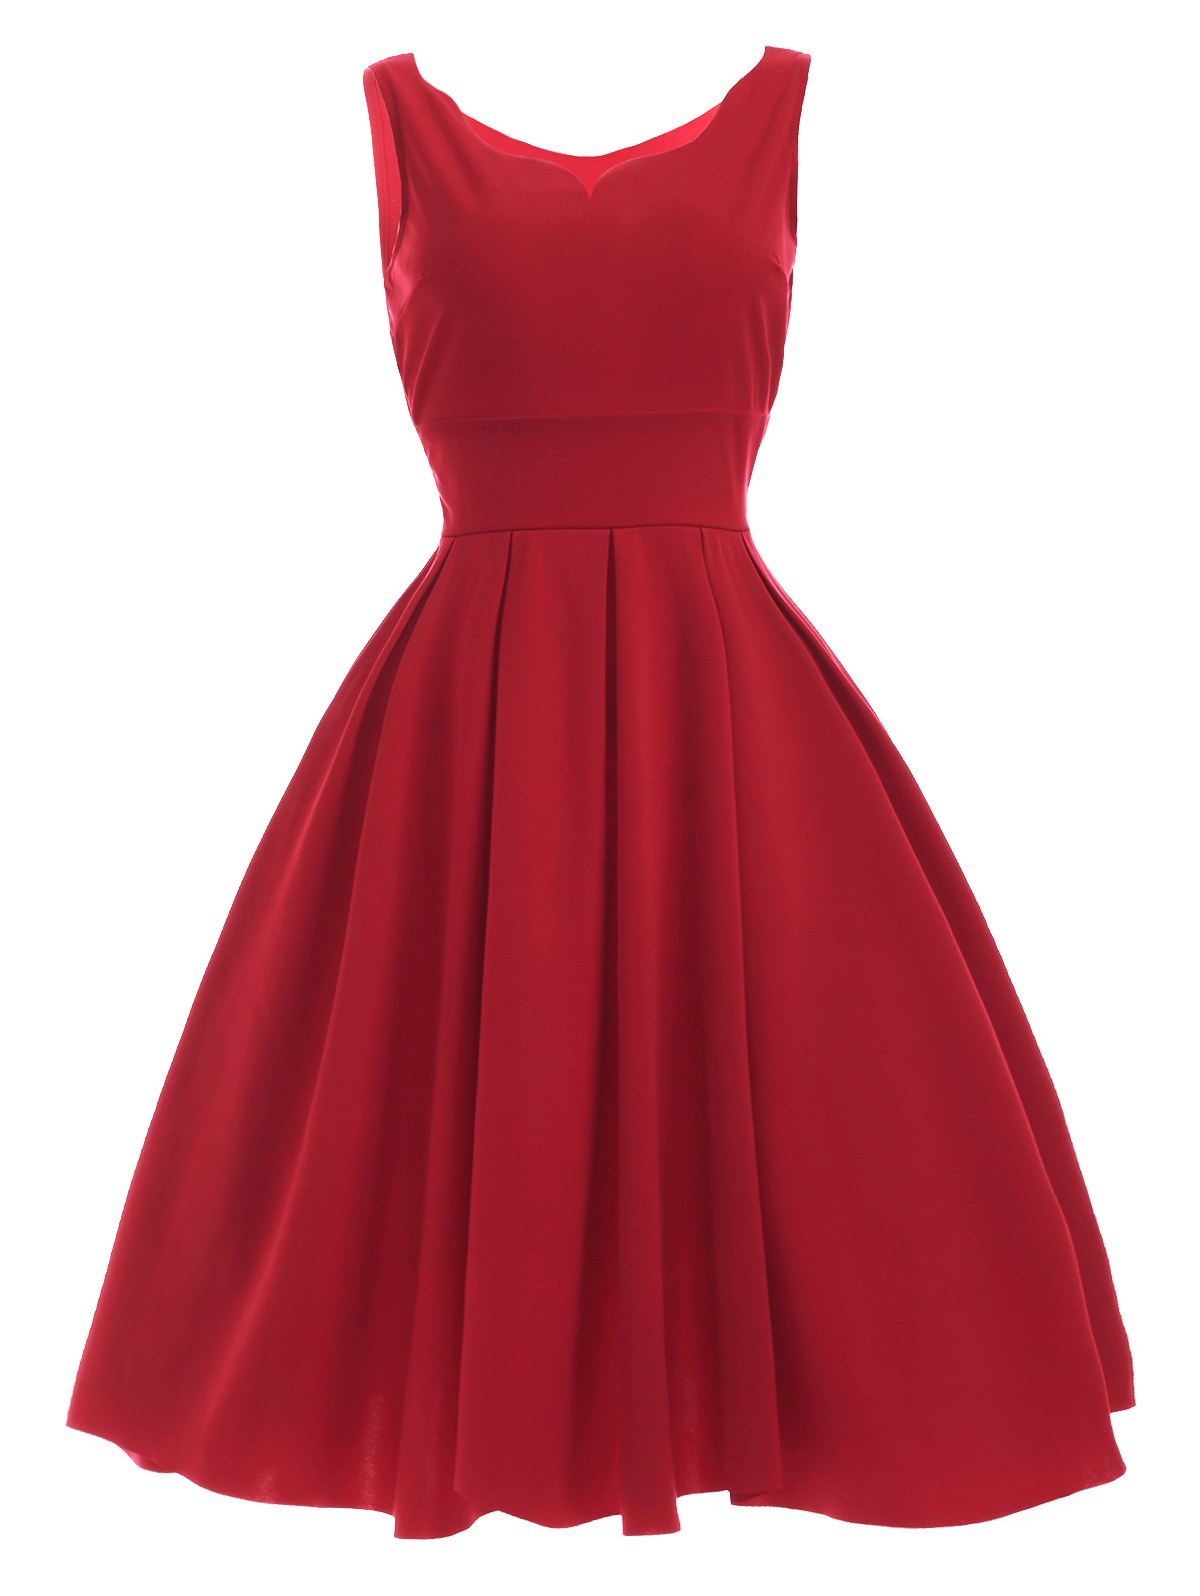 Vintage Sweetheart Neck Red Pleated Dress - RED XL